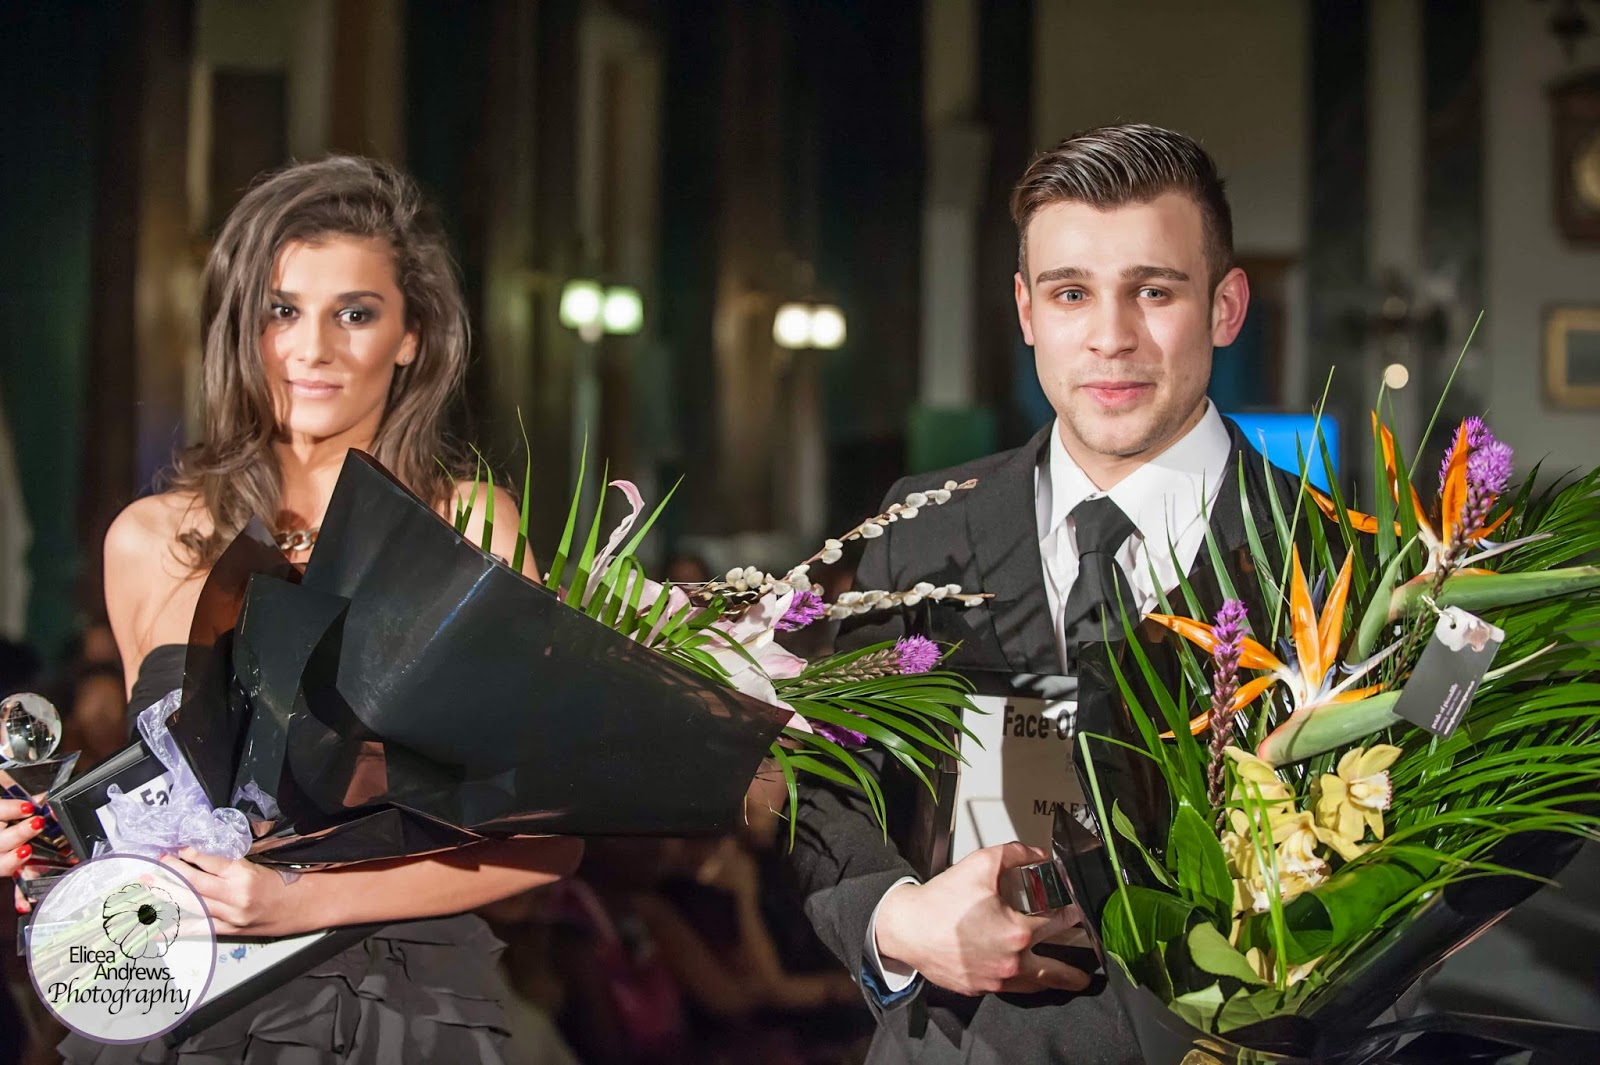 Face of The World Winners at BHMFW